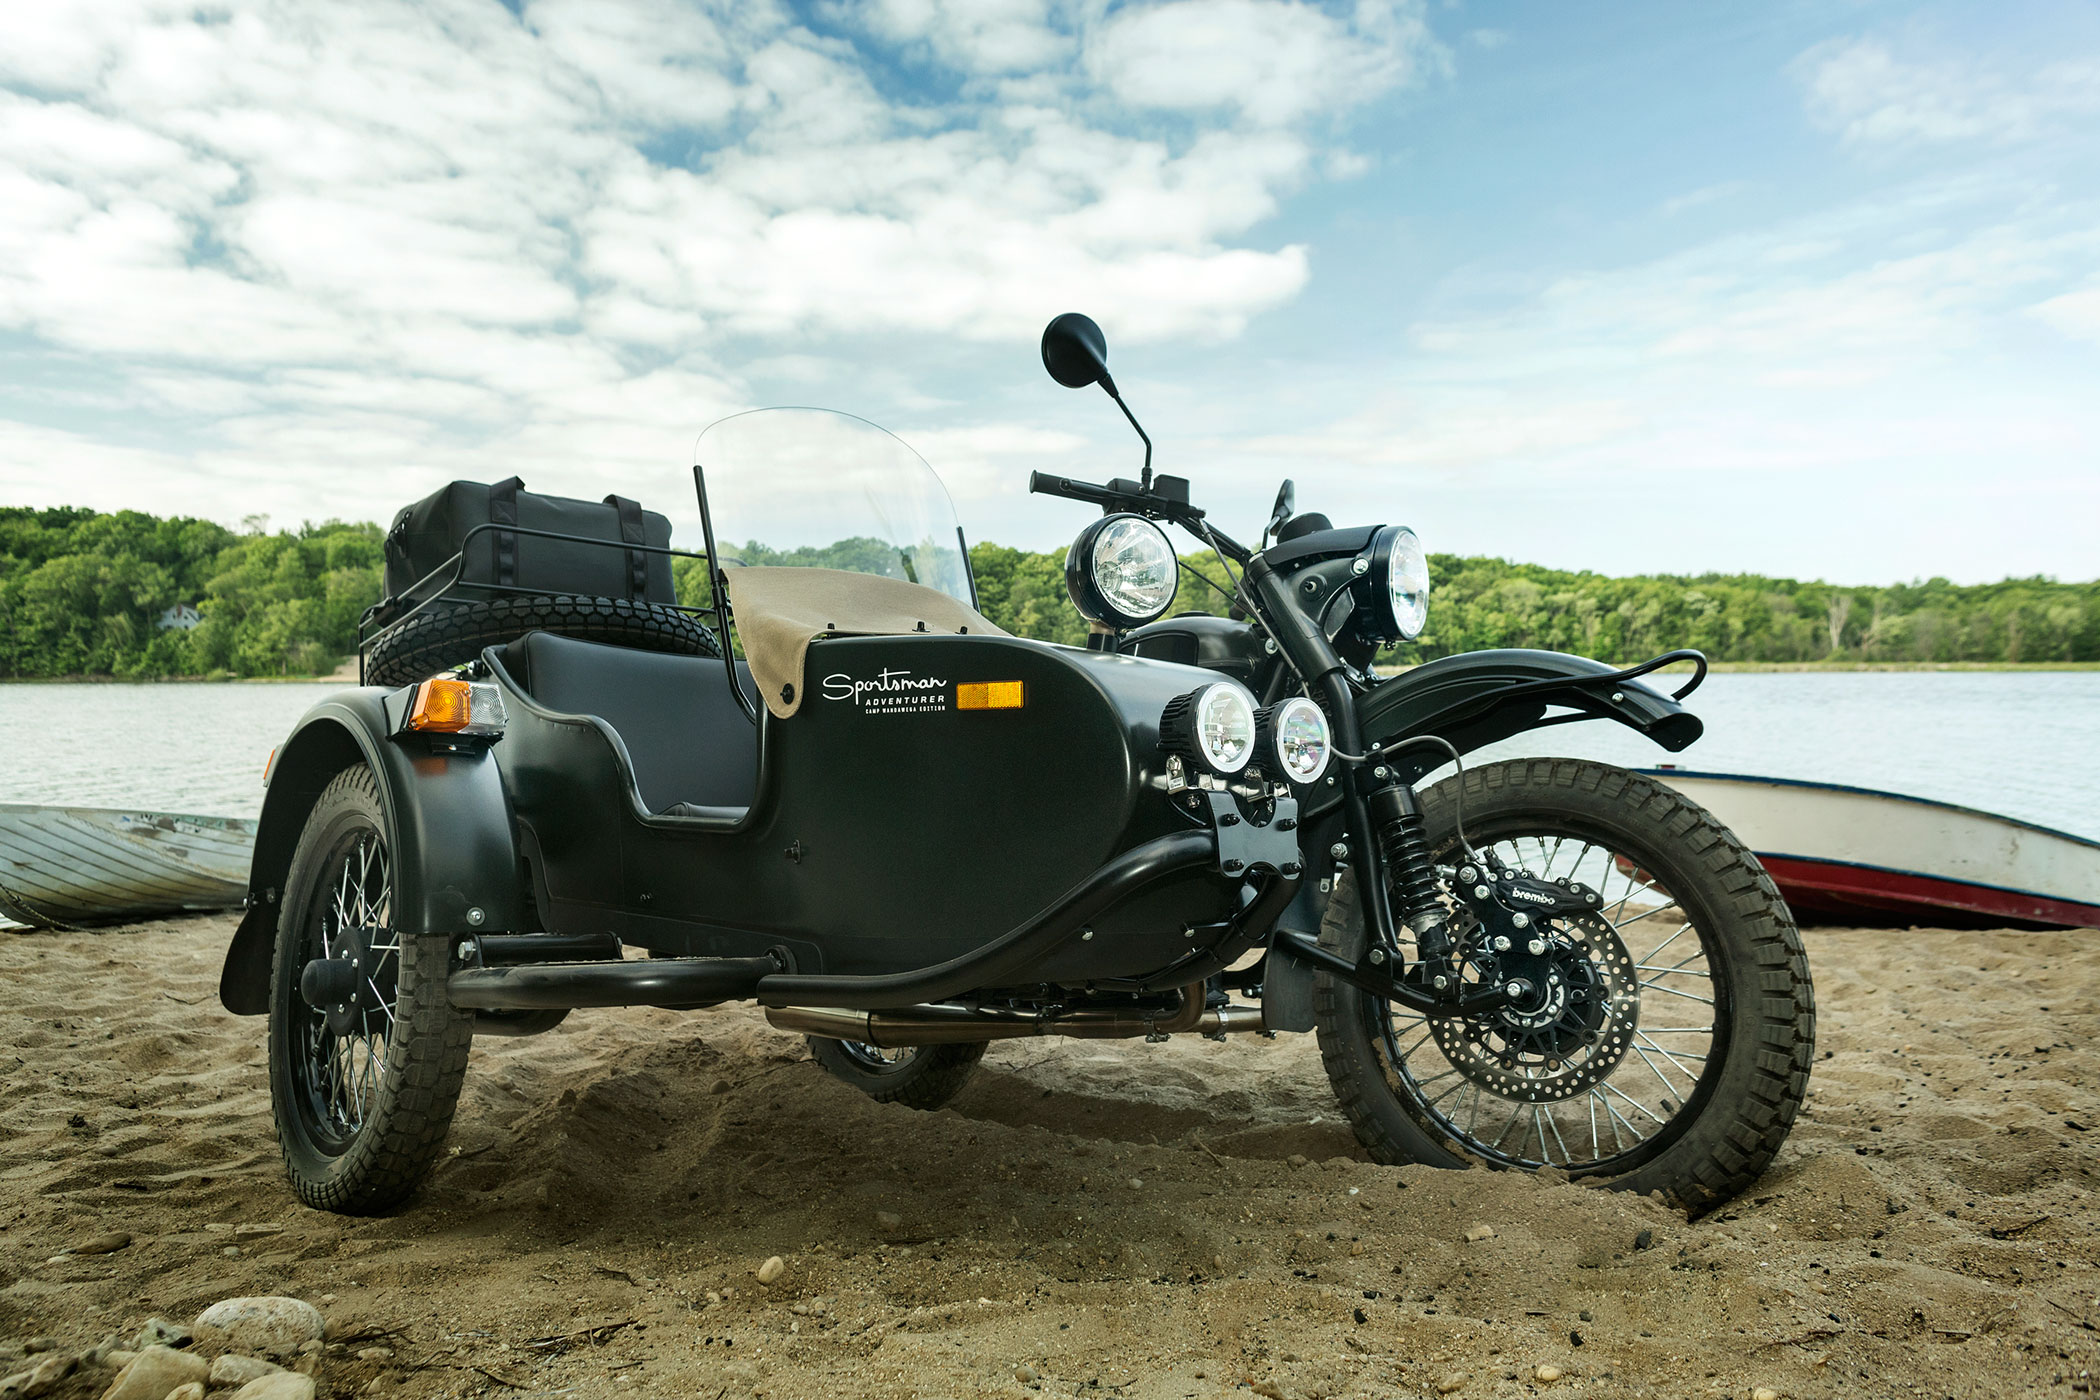 Ural M 66 with sidecar 1975 images #127256